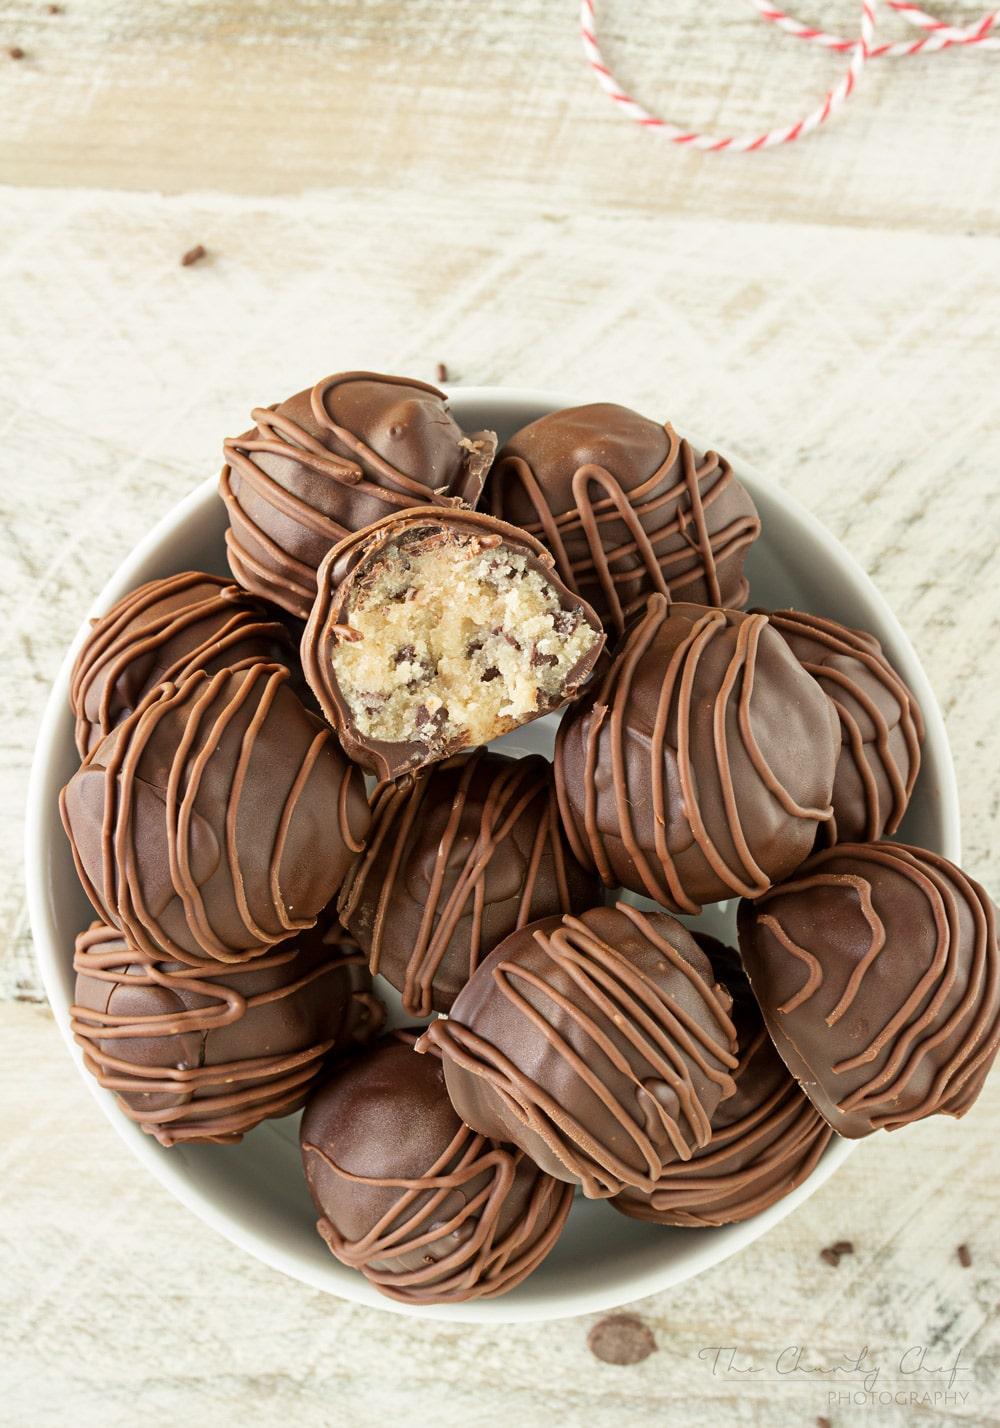 Triple-Chocolate-Cookie-Dough-Truffles | These cookie dough truffles are made from an egg-less cookie dough with semi sweet chocolate chips, then coated in two different kinds of chocolate! | http://thechunkychef.com